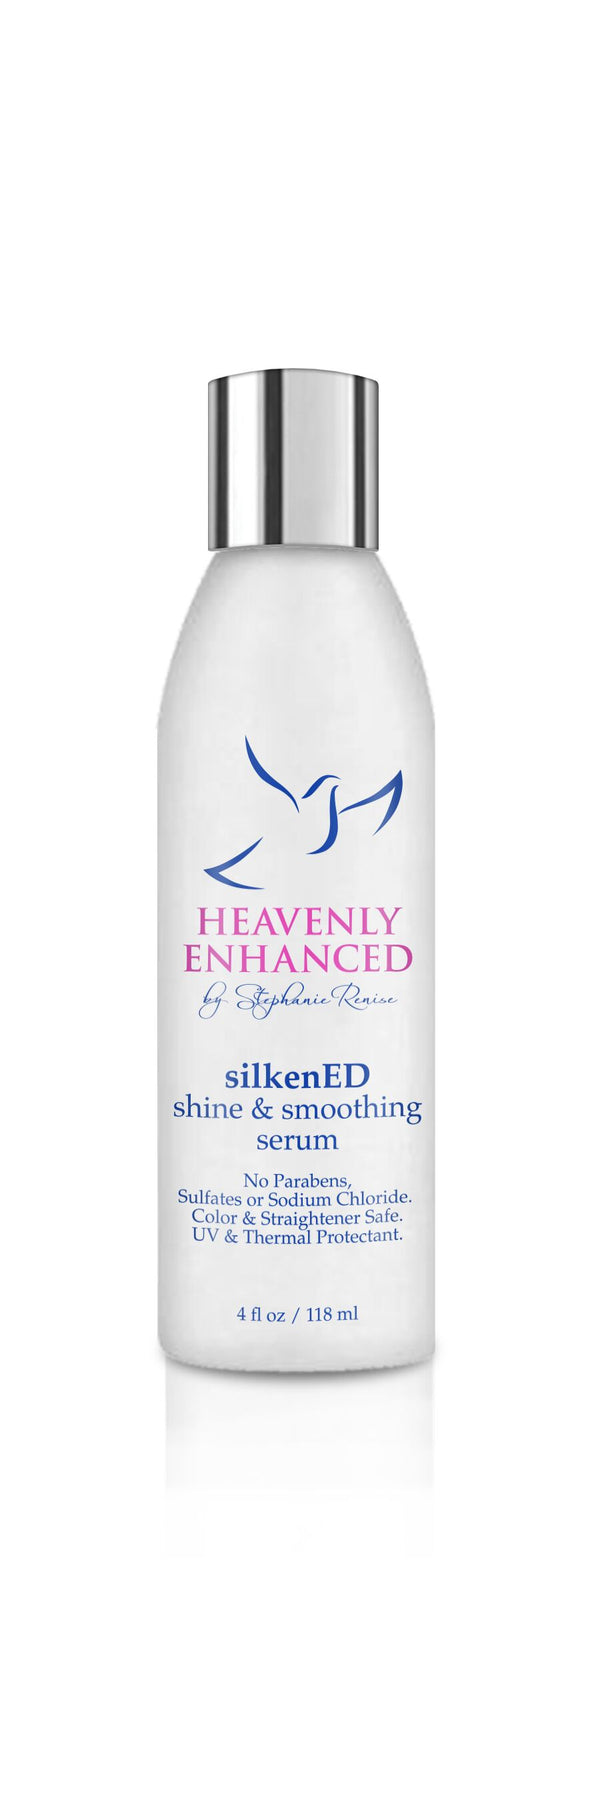 silkenED - shine and smoothing serum